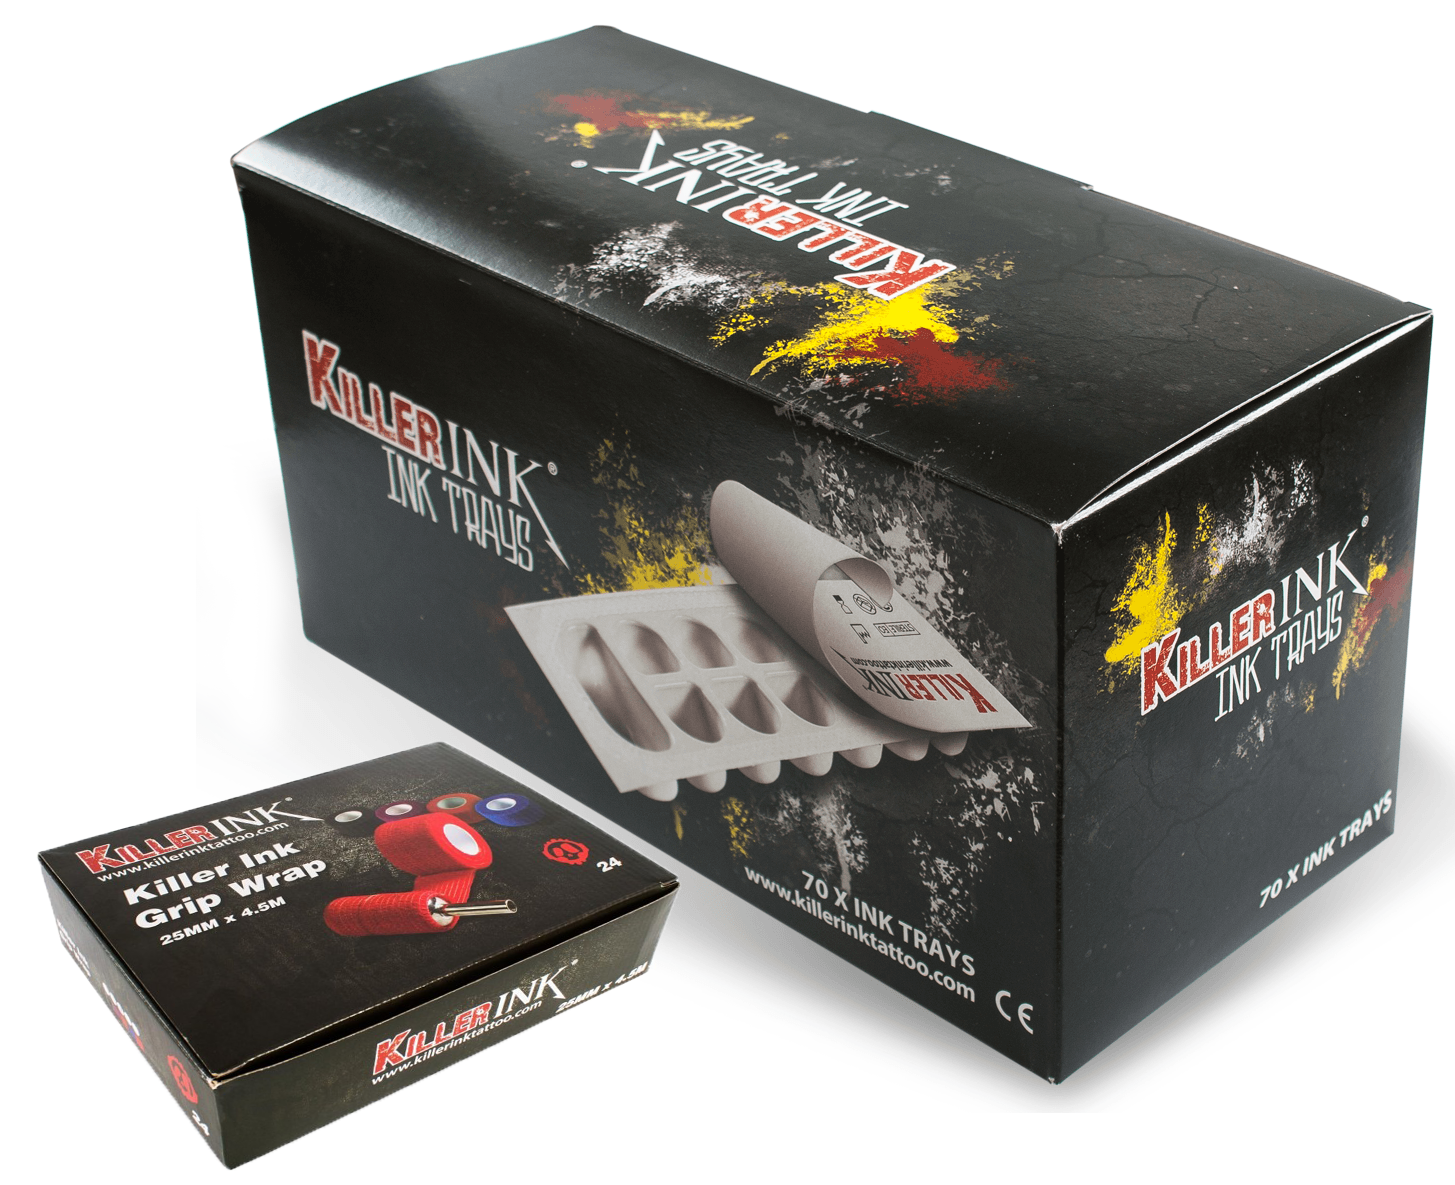 Killer Ink - Killer Ink Tattoo provide high end tattoo equipment, tattoo supplies and tattoo machines all manufactured to the highest quality. To purchase your own high end equipment, visit Killer Ink below!